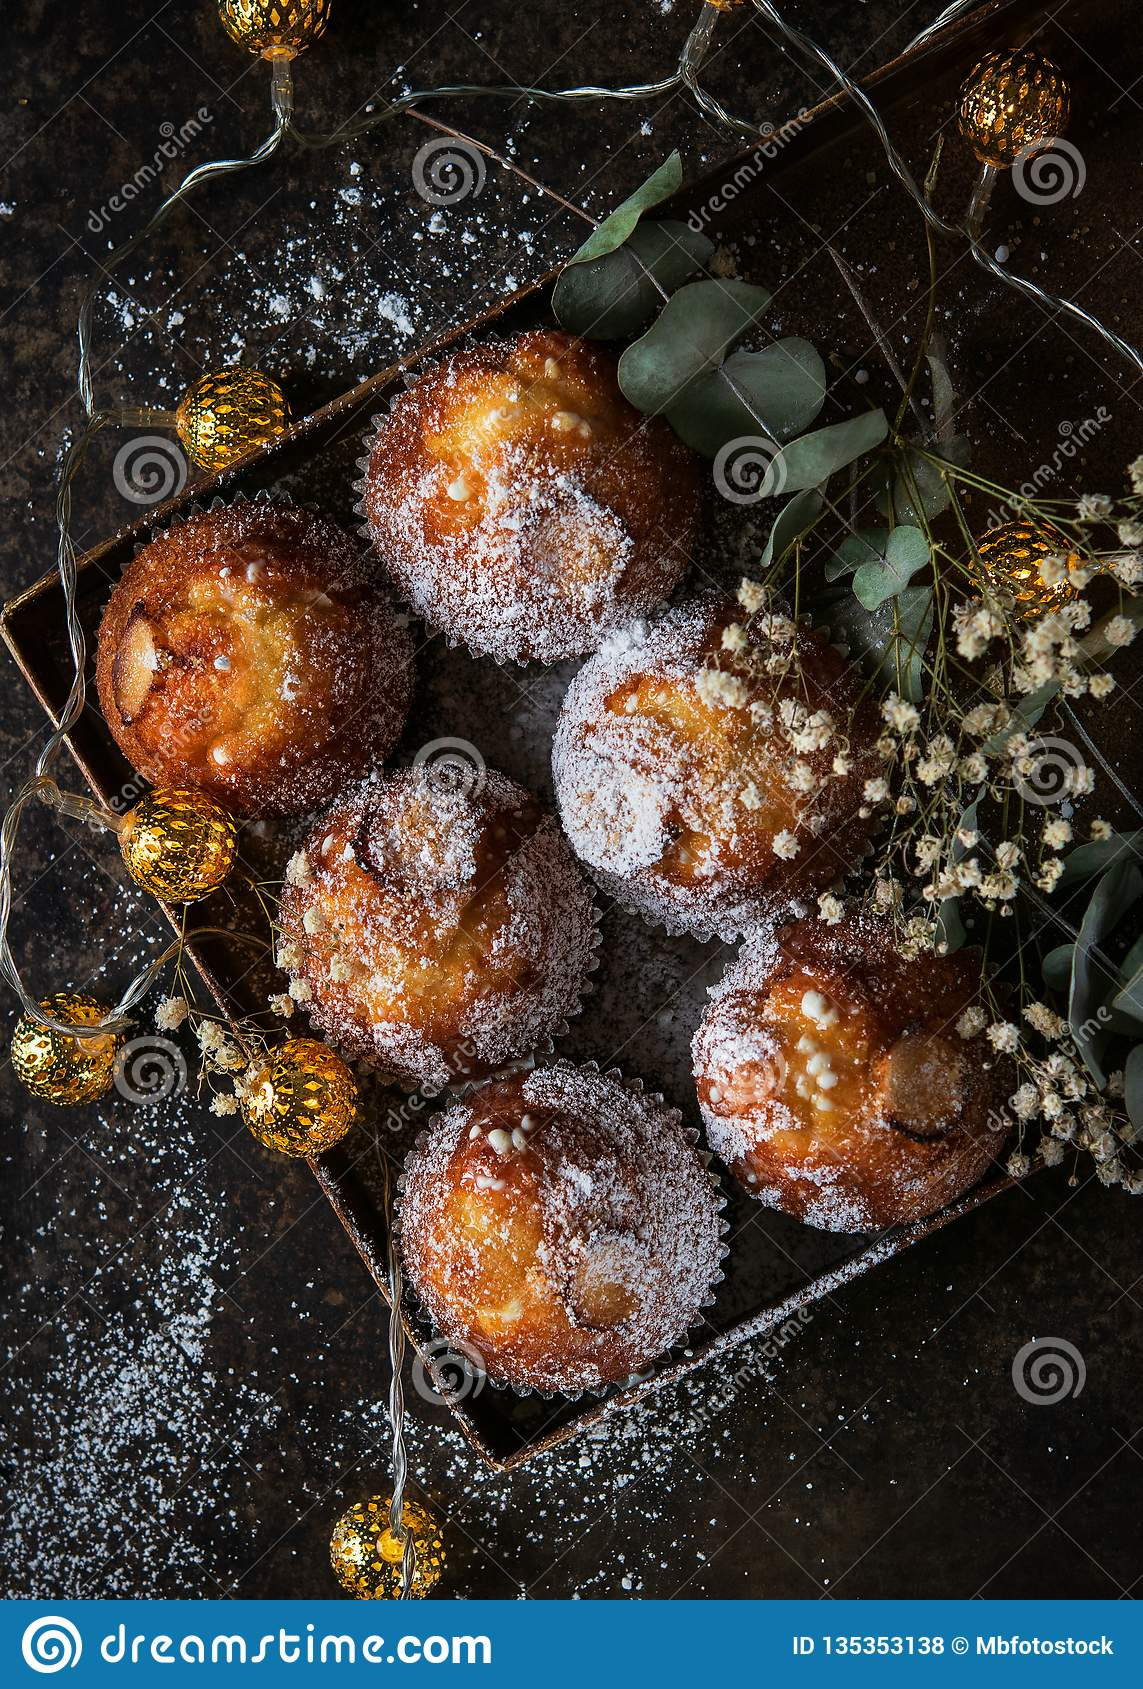 Homemade muffins with powdered sugar on a dark background, selective focus. Romantic concept